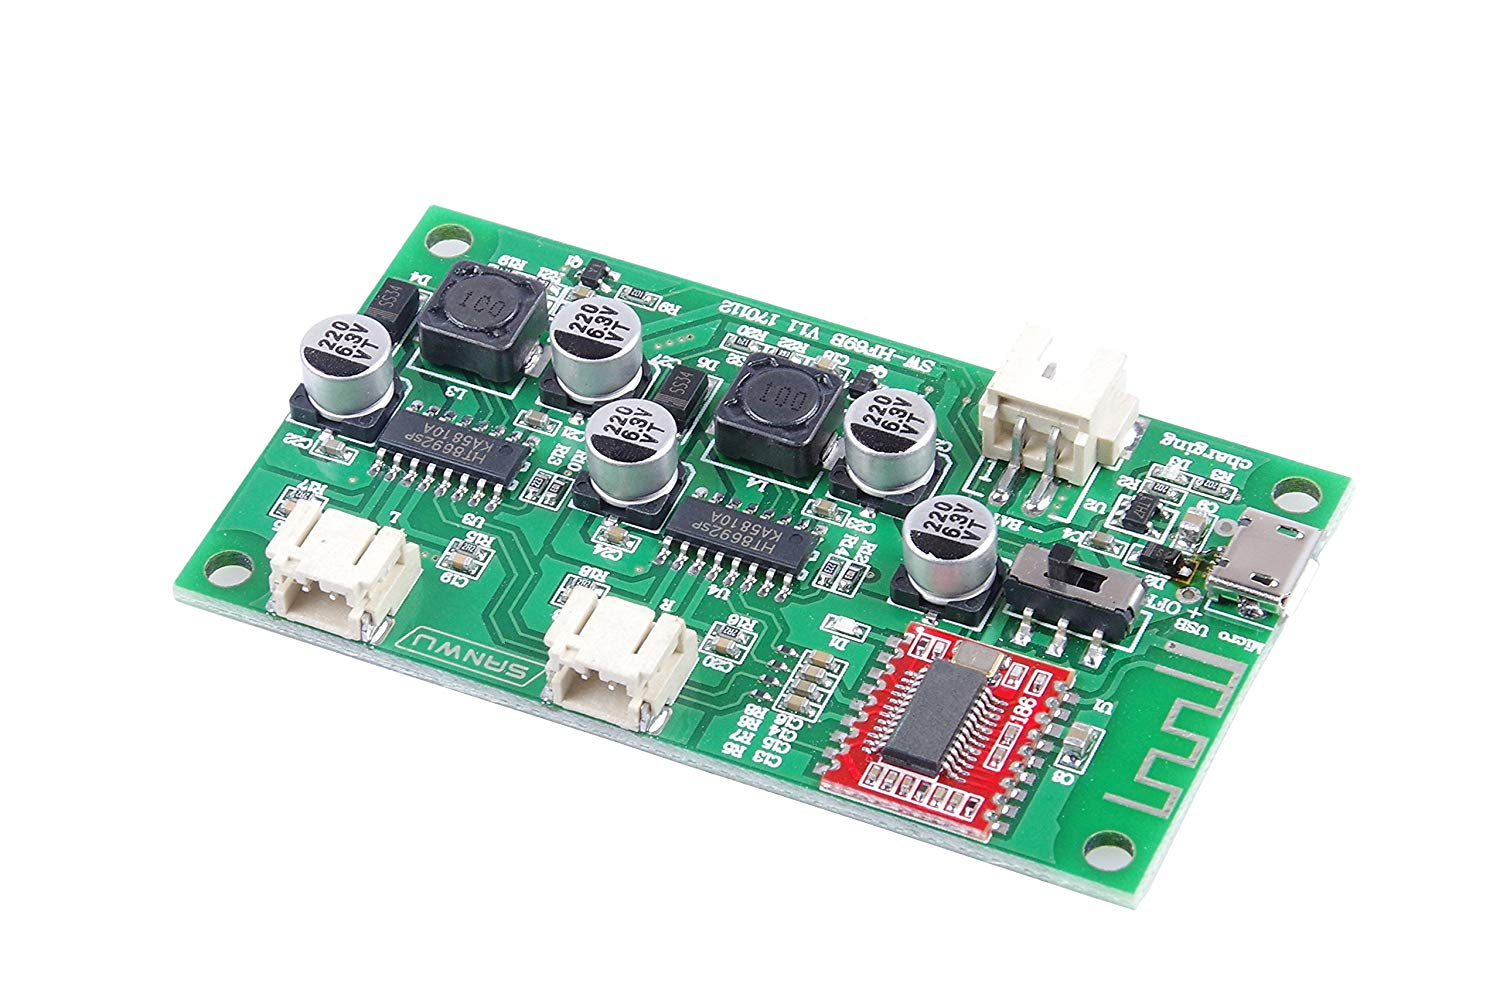 KNACRO 2-Channel Bluetooth Amplifier Board 6W +6W Bluetooth Speaker Modified Board DC5V Power Supply Can Be Connected To 3.7V Lithium Battery-powered, With charge management circuit